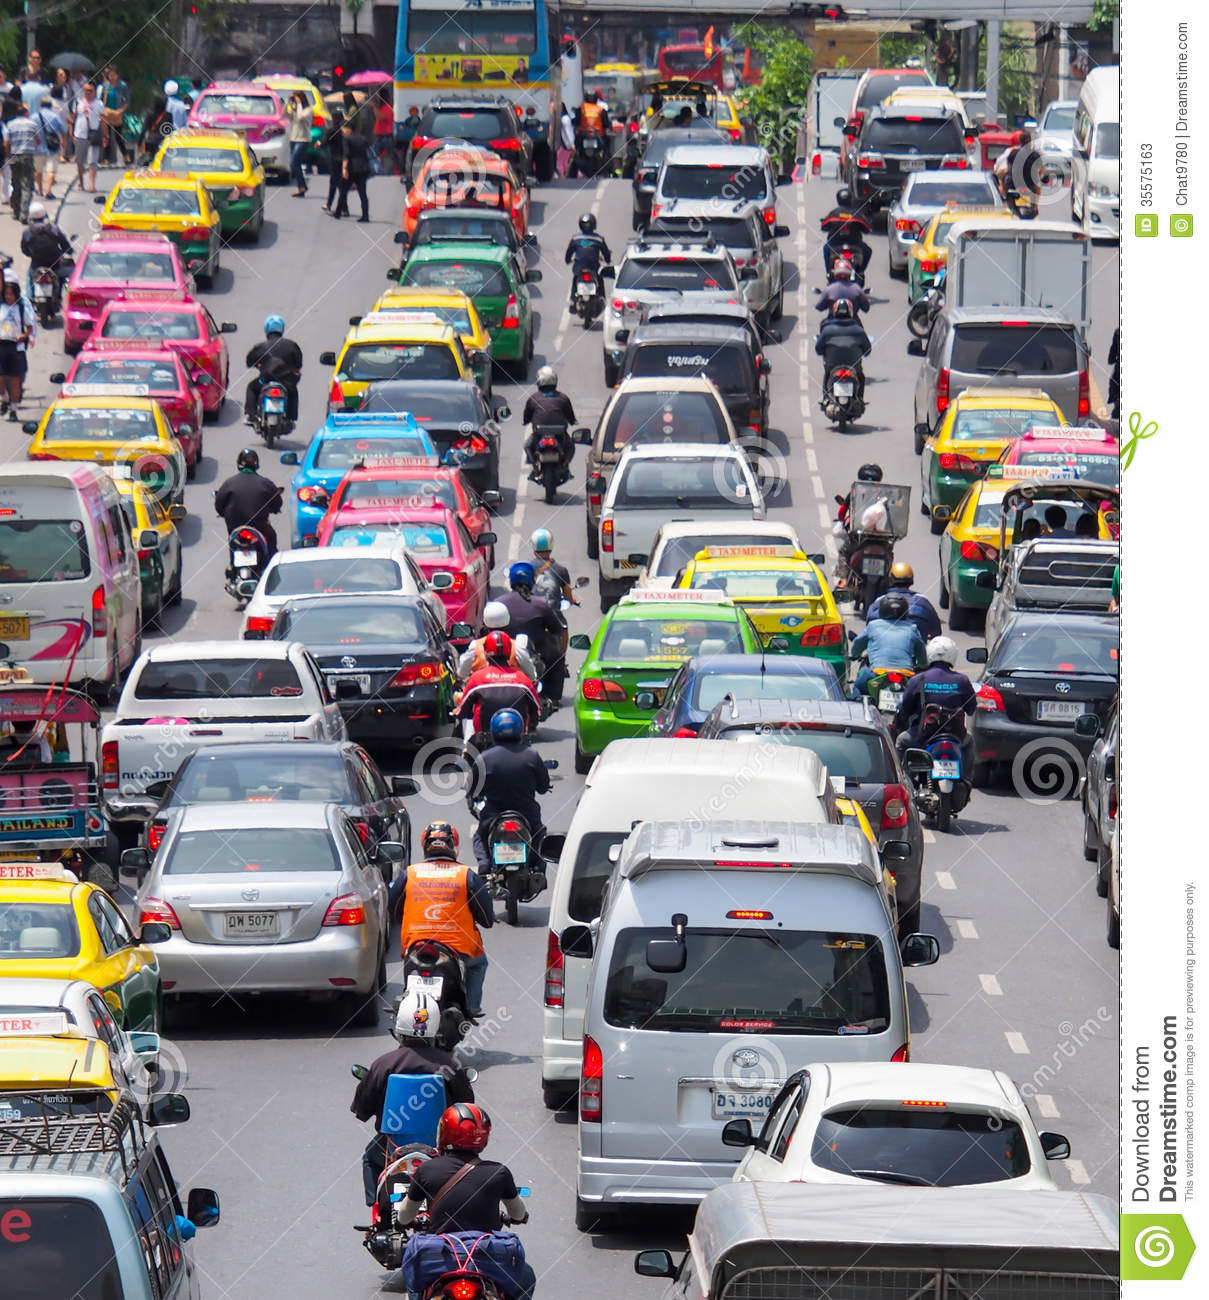 Stock Photo Catoon Map City Cartoon Illustration Image35226560 besides Stock Illustration Vector Illustration Info Graphic Elements Traveling To Thailand Hand Drawn Concept Travel Lettering Logo Image67100902 as well Stock Illustration Cute Bangkok Thailand Guide Map Illustration Set Thai Image46568672 likewise Stock Photos Very Bad Traffic Center Bangkok City Thailand August Number Vehicles Registered Rose To Image35575163 also Bangkok During The Vietnam War. on thailand bangkok car audio